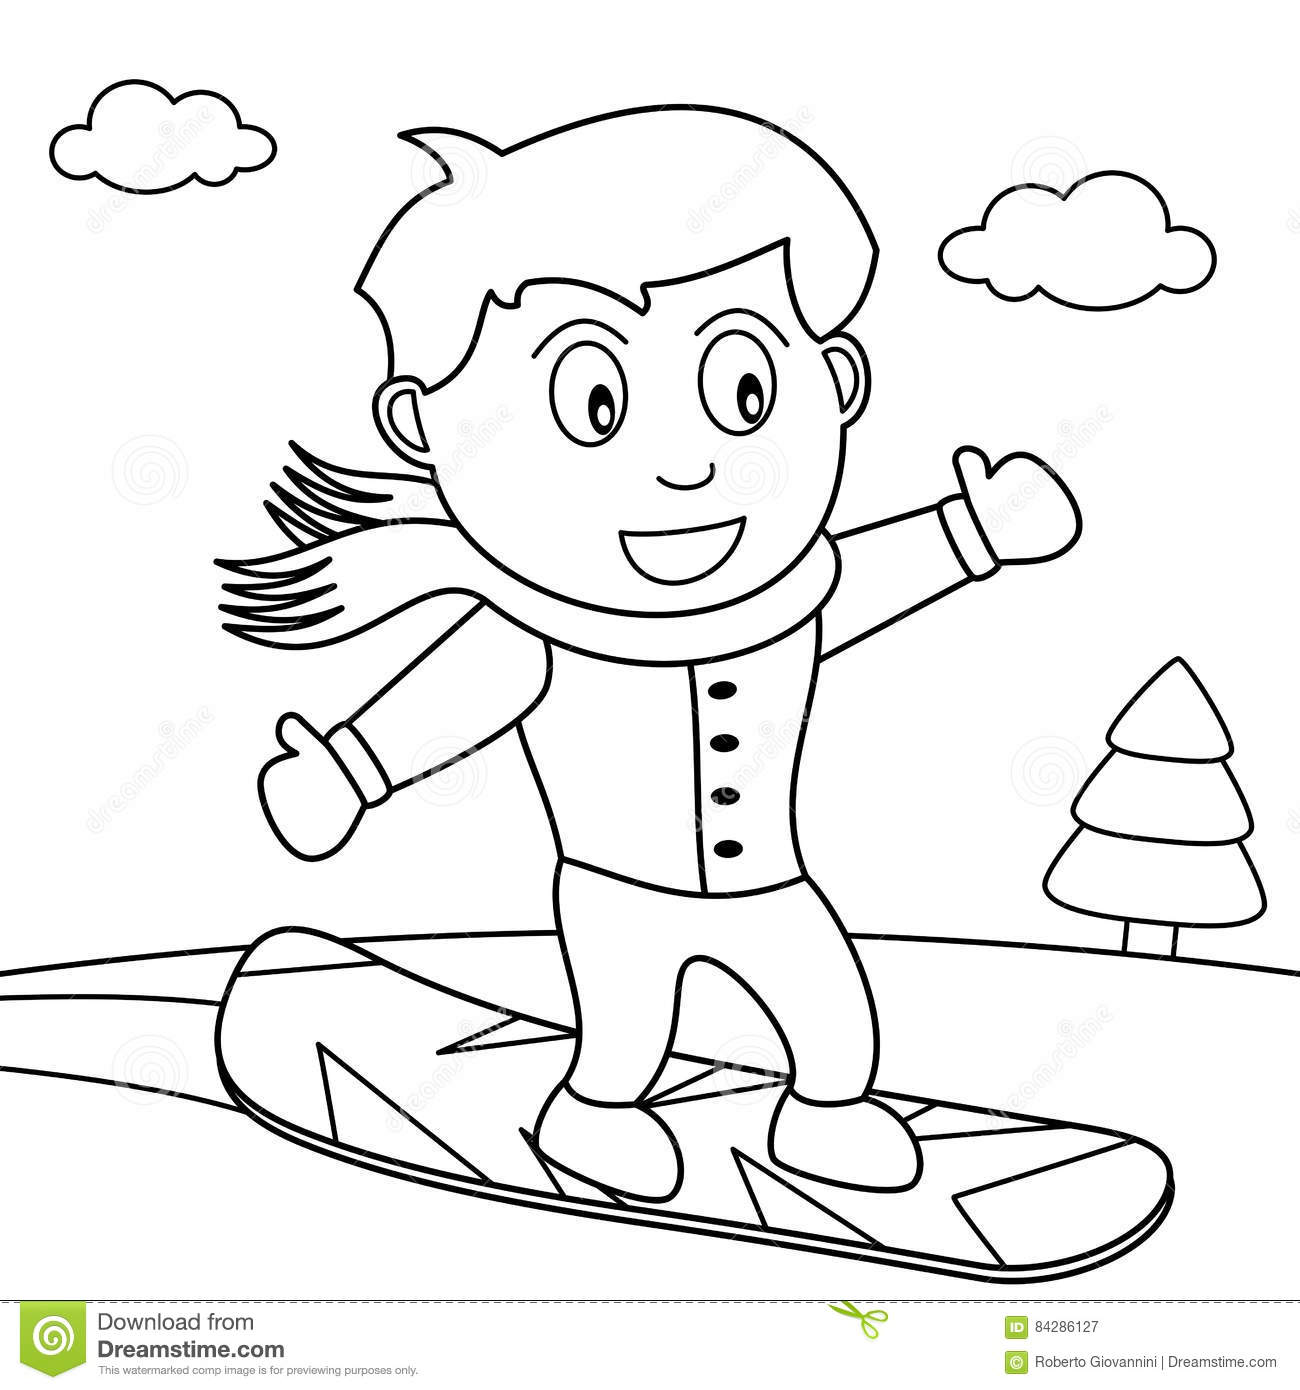 Coloring Snowboarder Boy On The Snow Stock Vector Illustration Of Sport Snowboarder 84286127